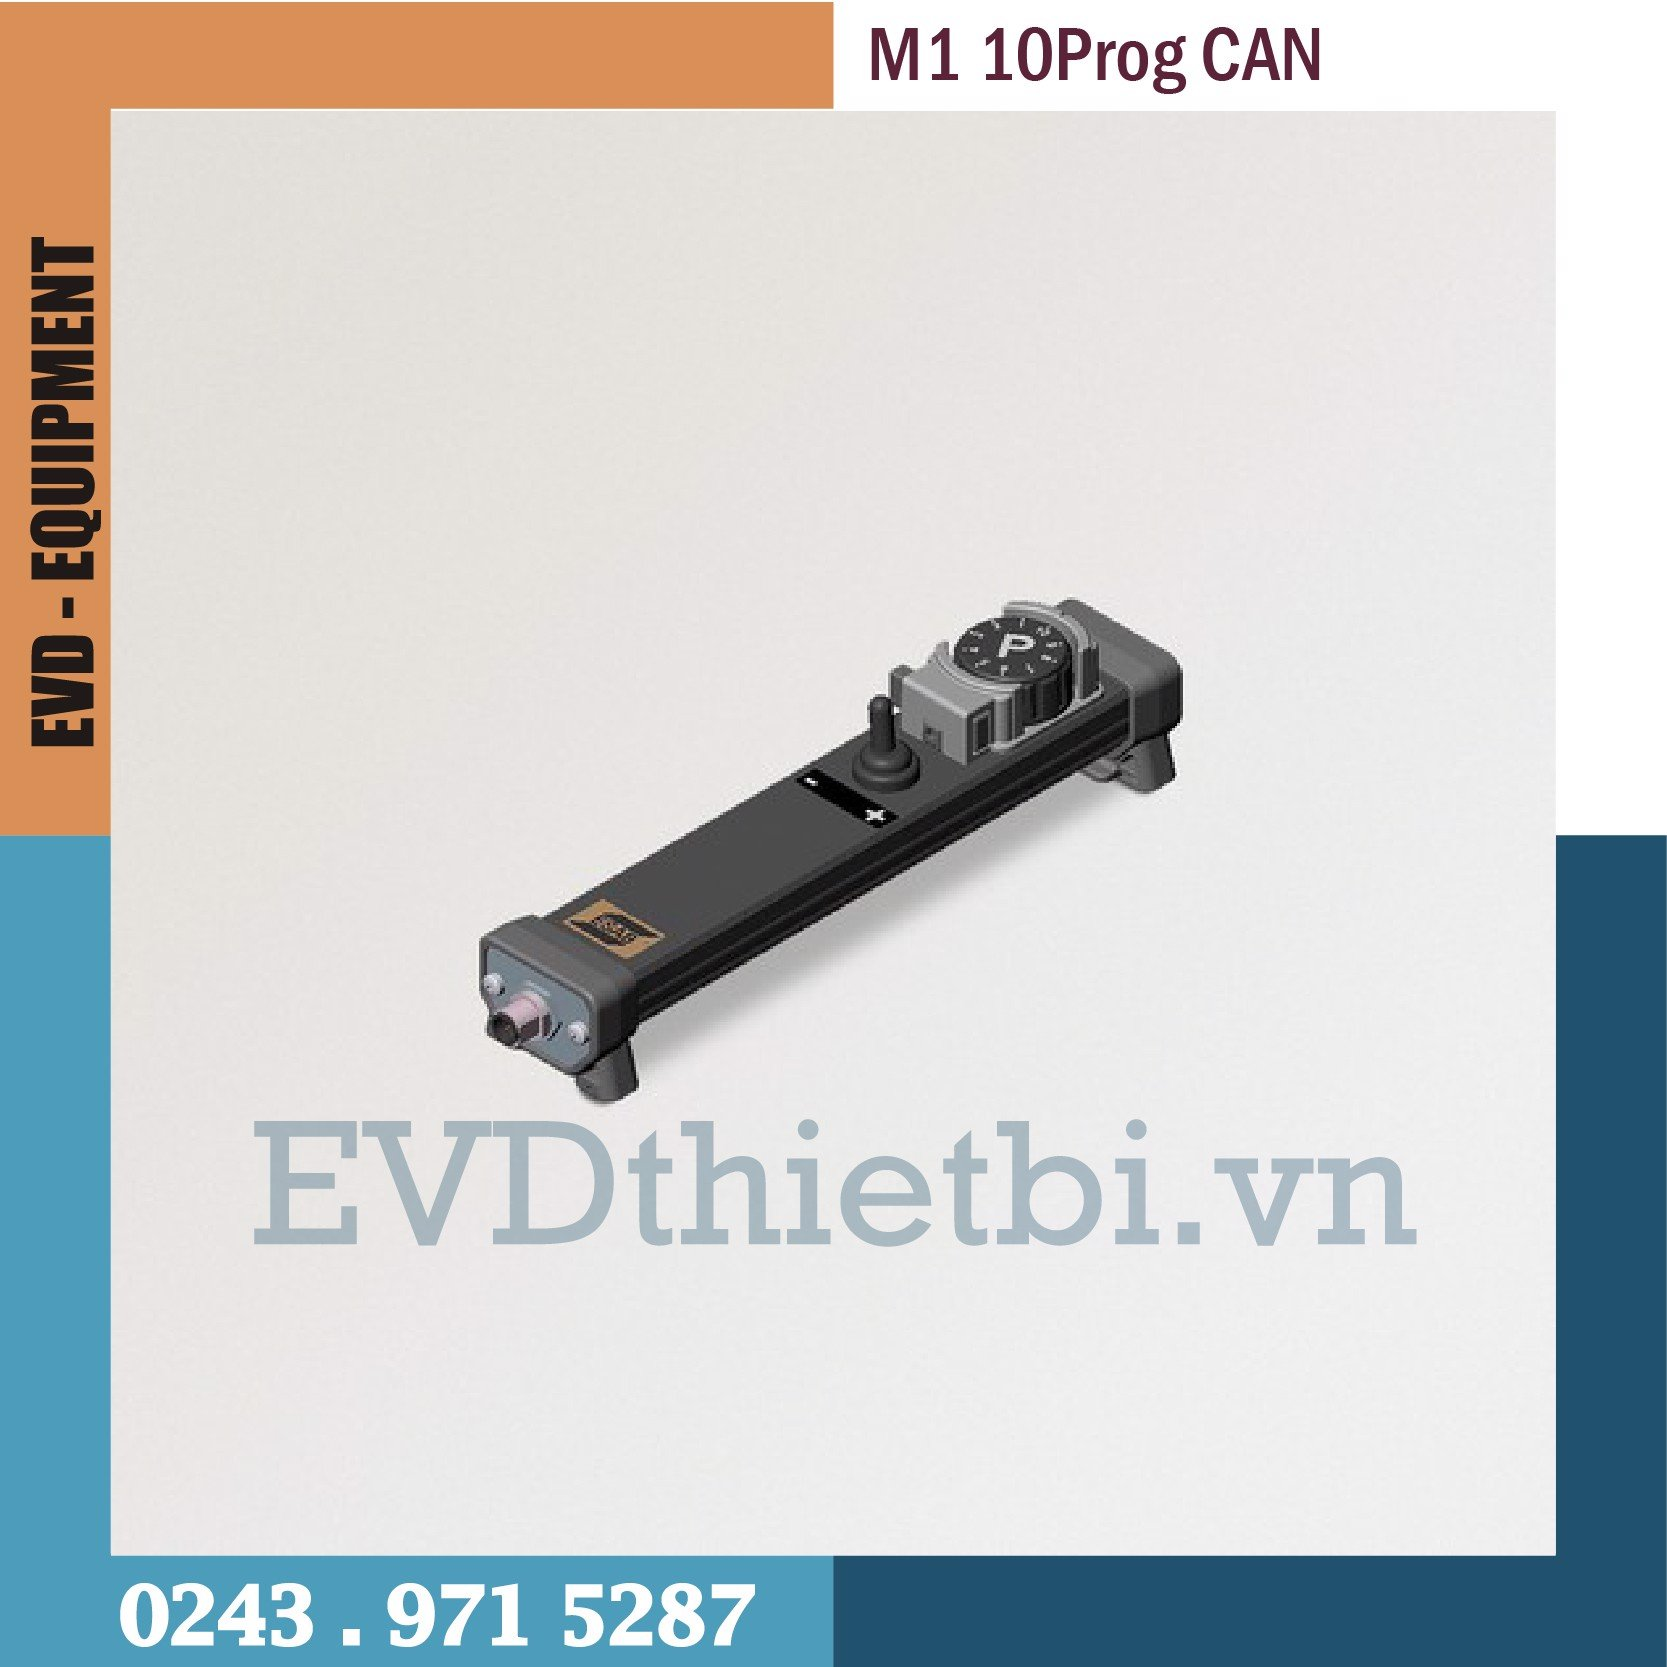 CÁP NỐI ĐIỀU KHIỂN ESAB - INTERCONNECTION CABLES FOR REMOTE CONTROLS